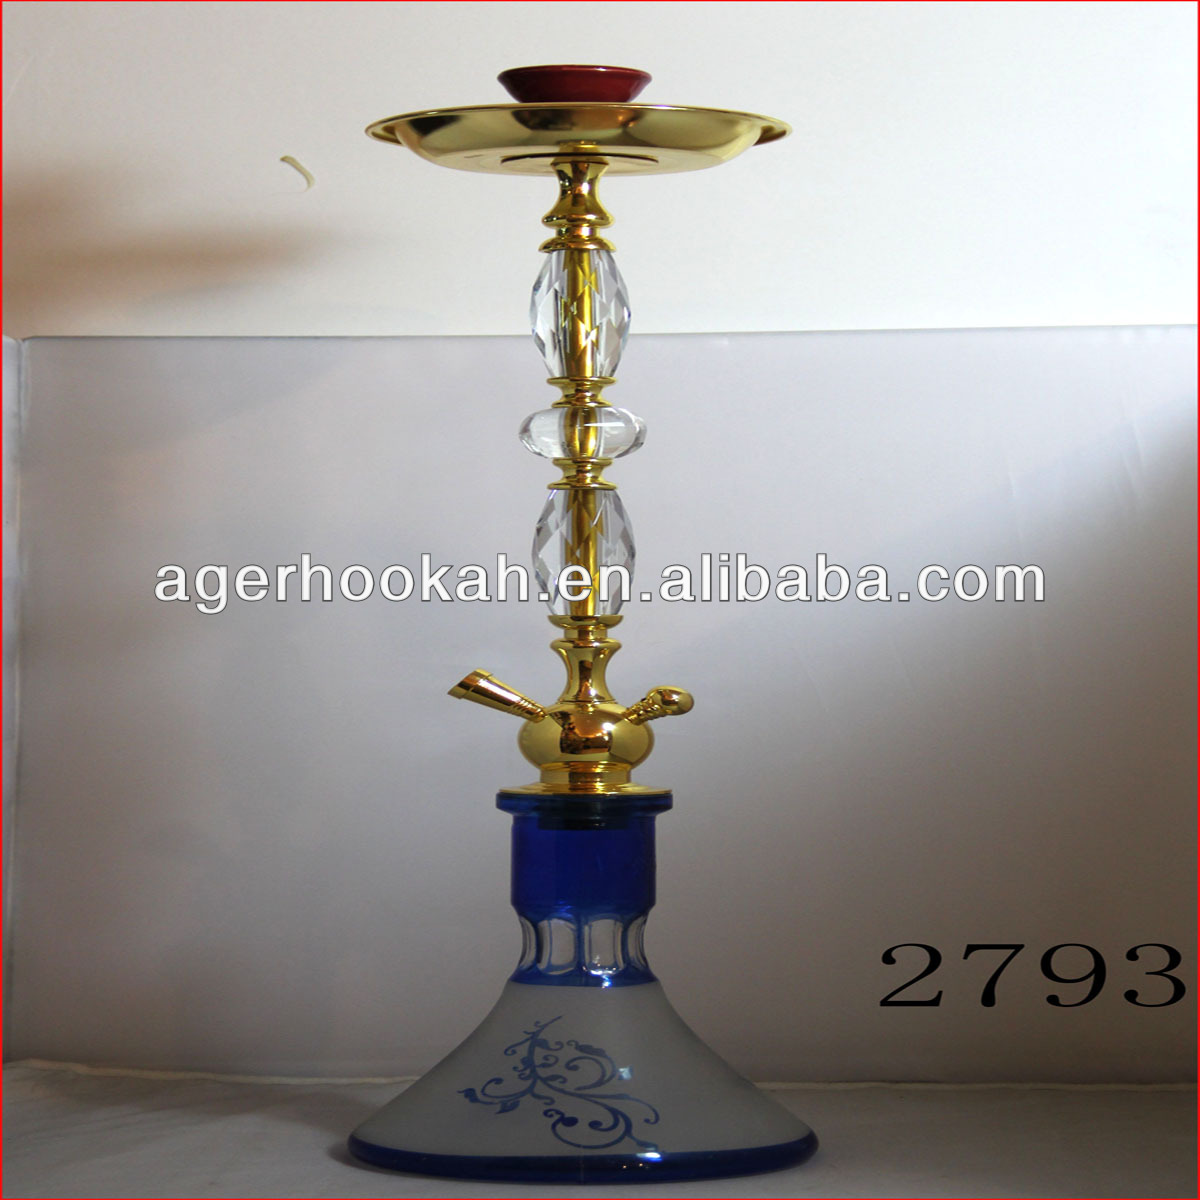 AGER new tobacco glass pipes